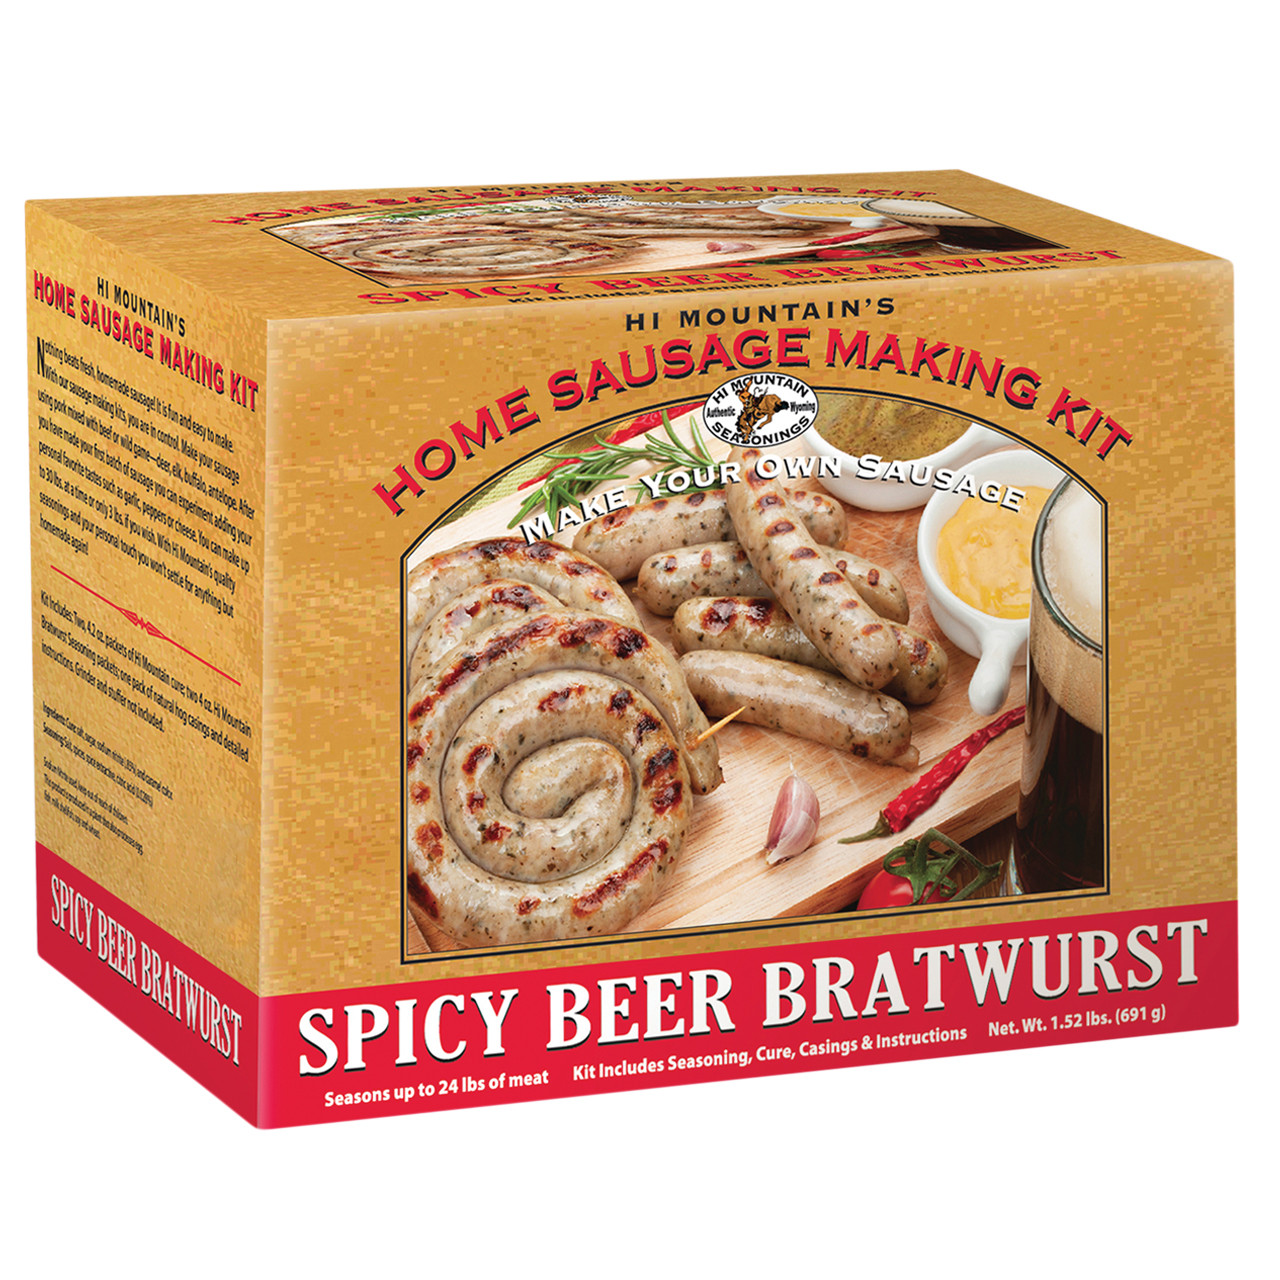 Spicy Beer Bratwurst Kit